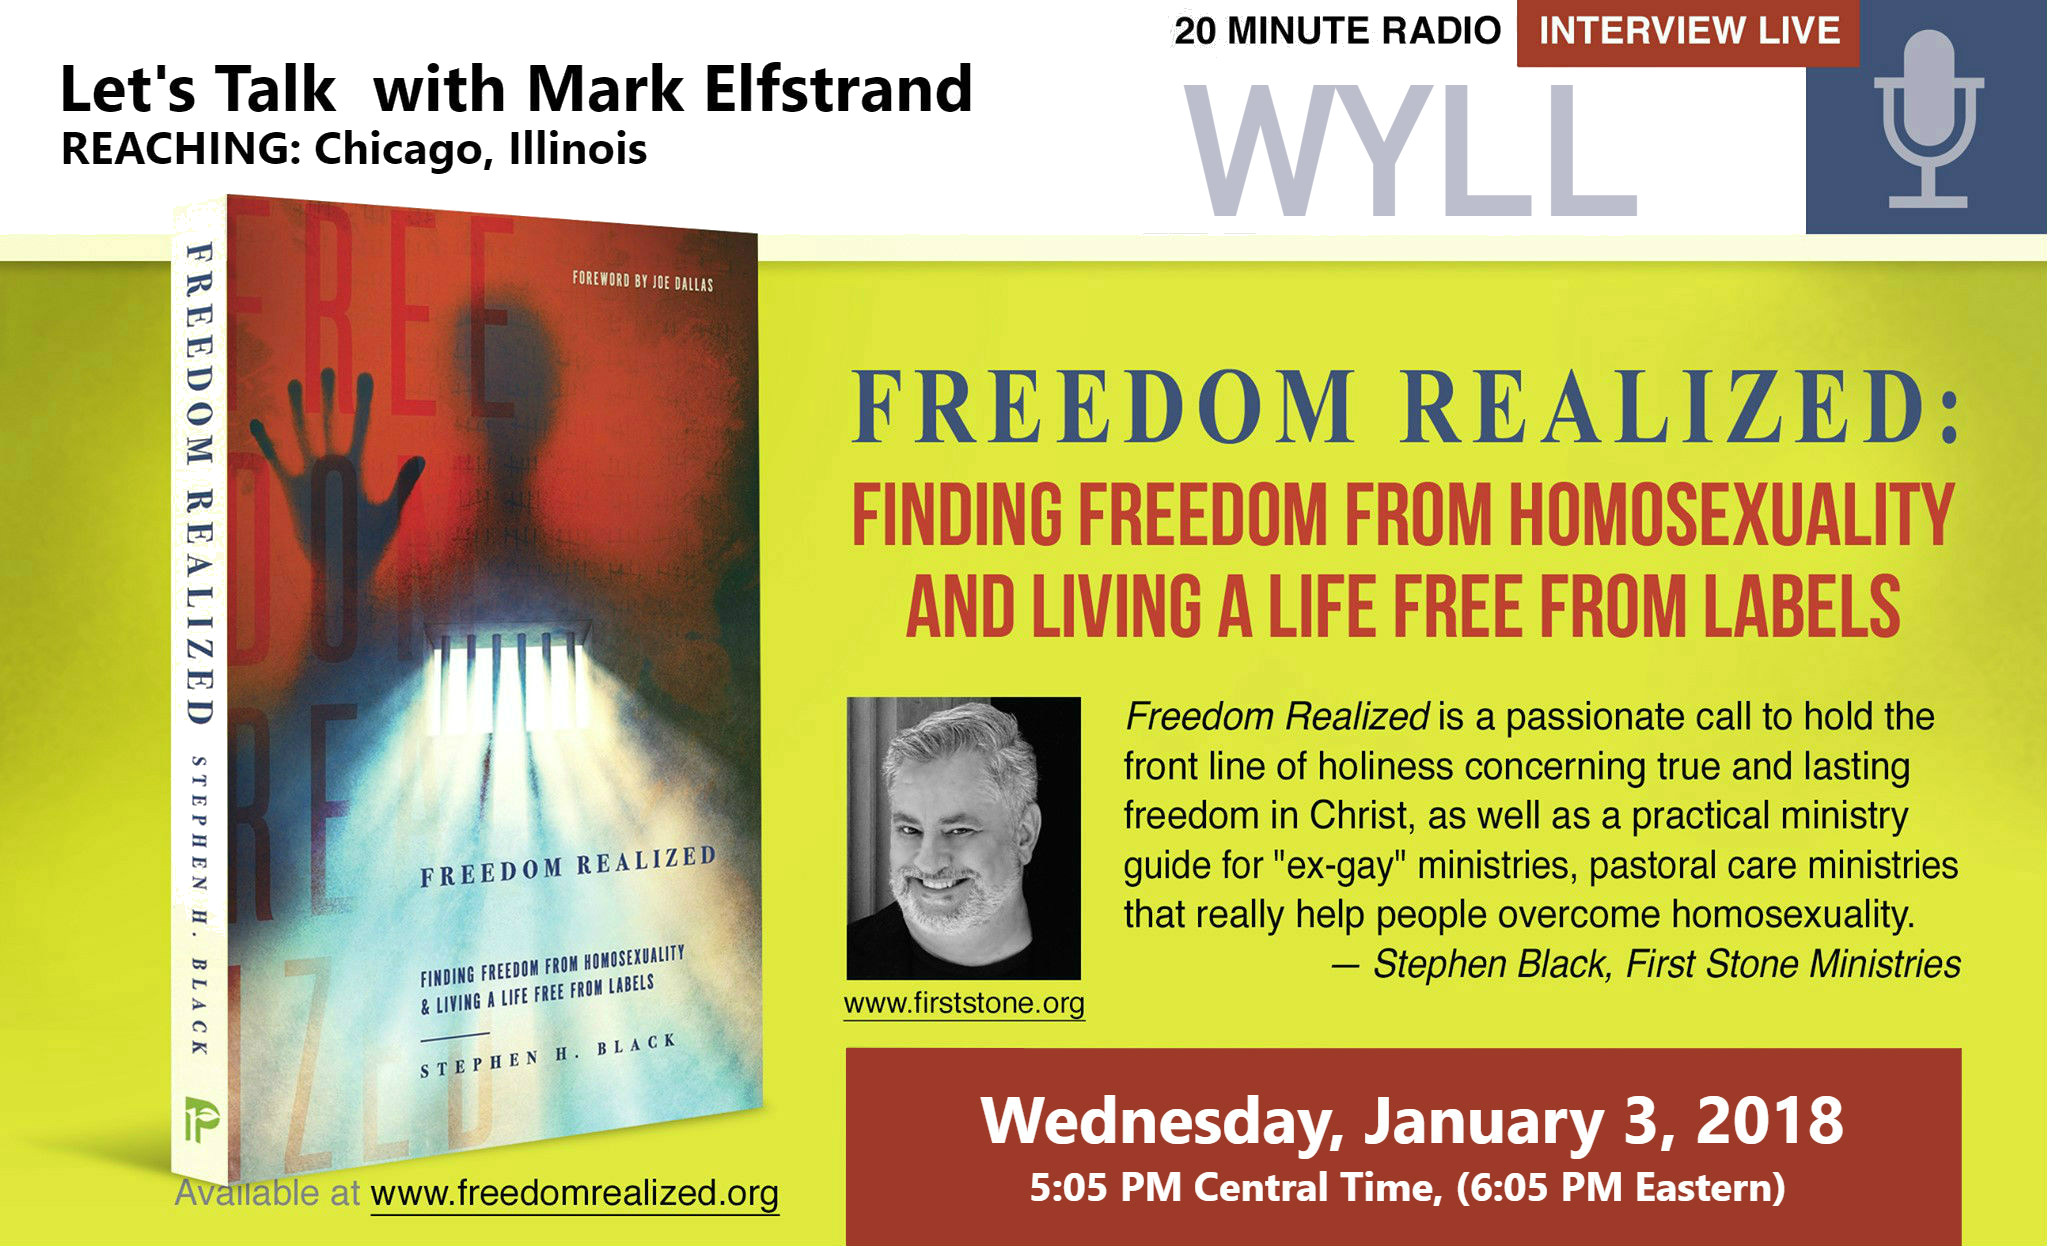 12 B - Jan 3-2018 - Mark Elfstrand - Lets Talk